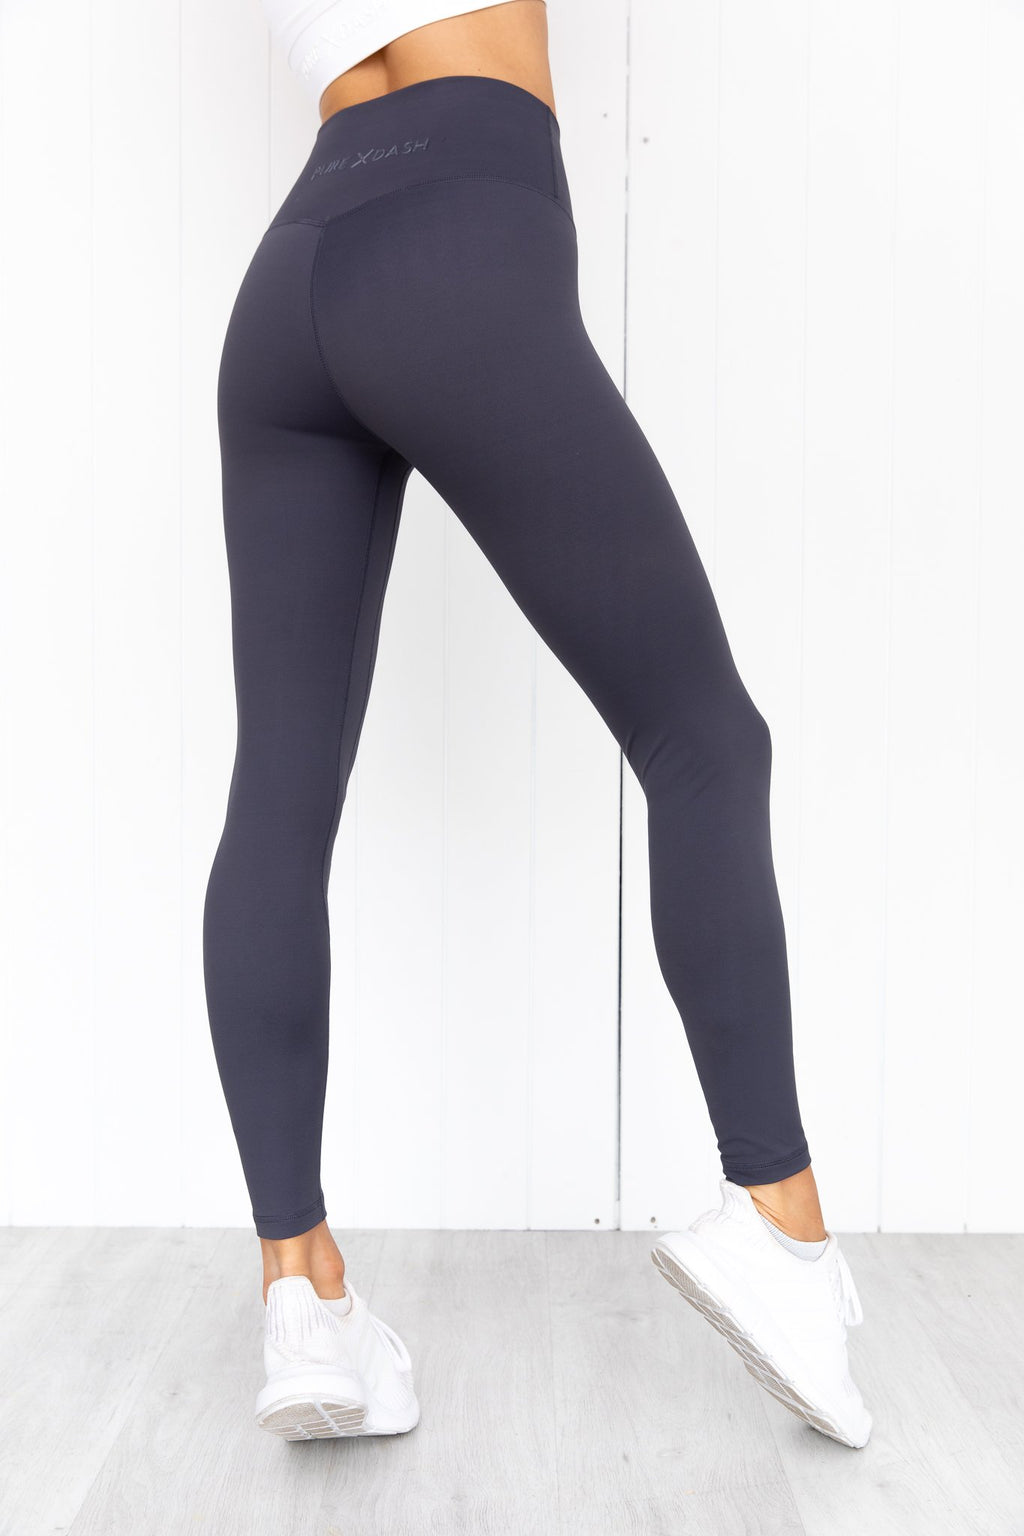 **Pre-Order** Panther High Rise Leggings - Slate Grey